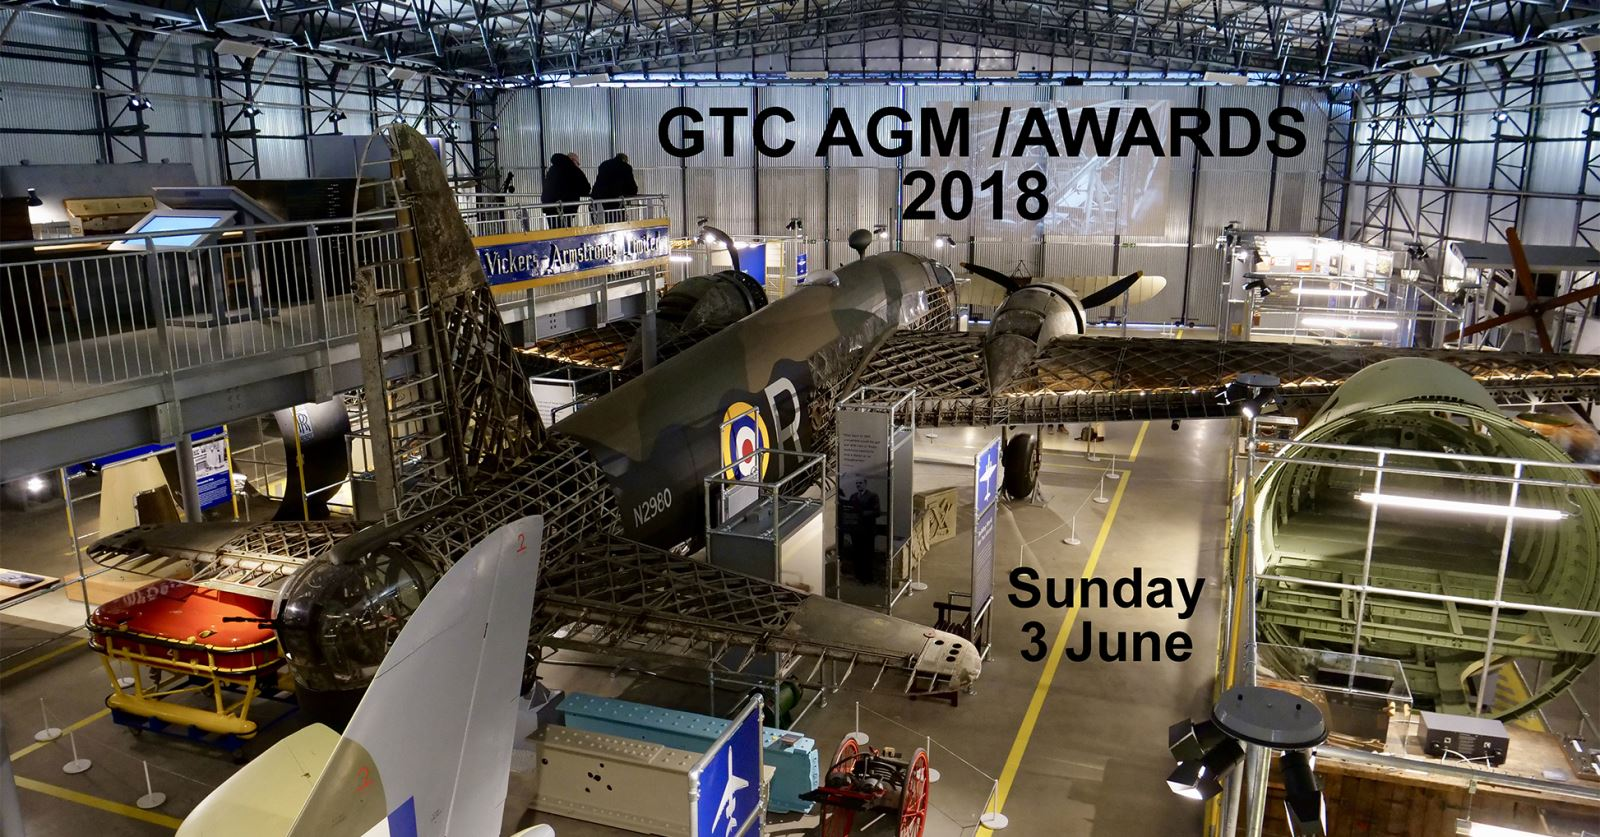 Book your tickets now for the a great day out at Brooklands Museum for the GTC AGM and Awards 2018